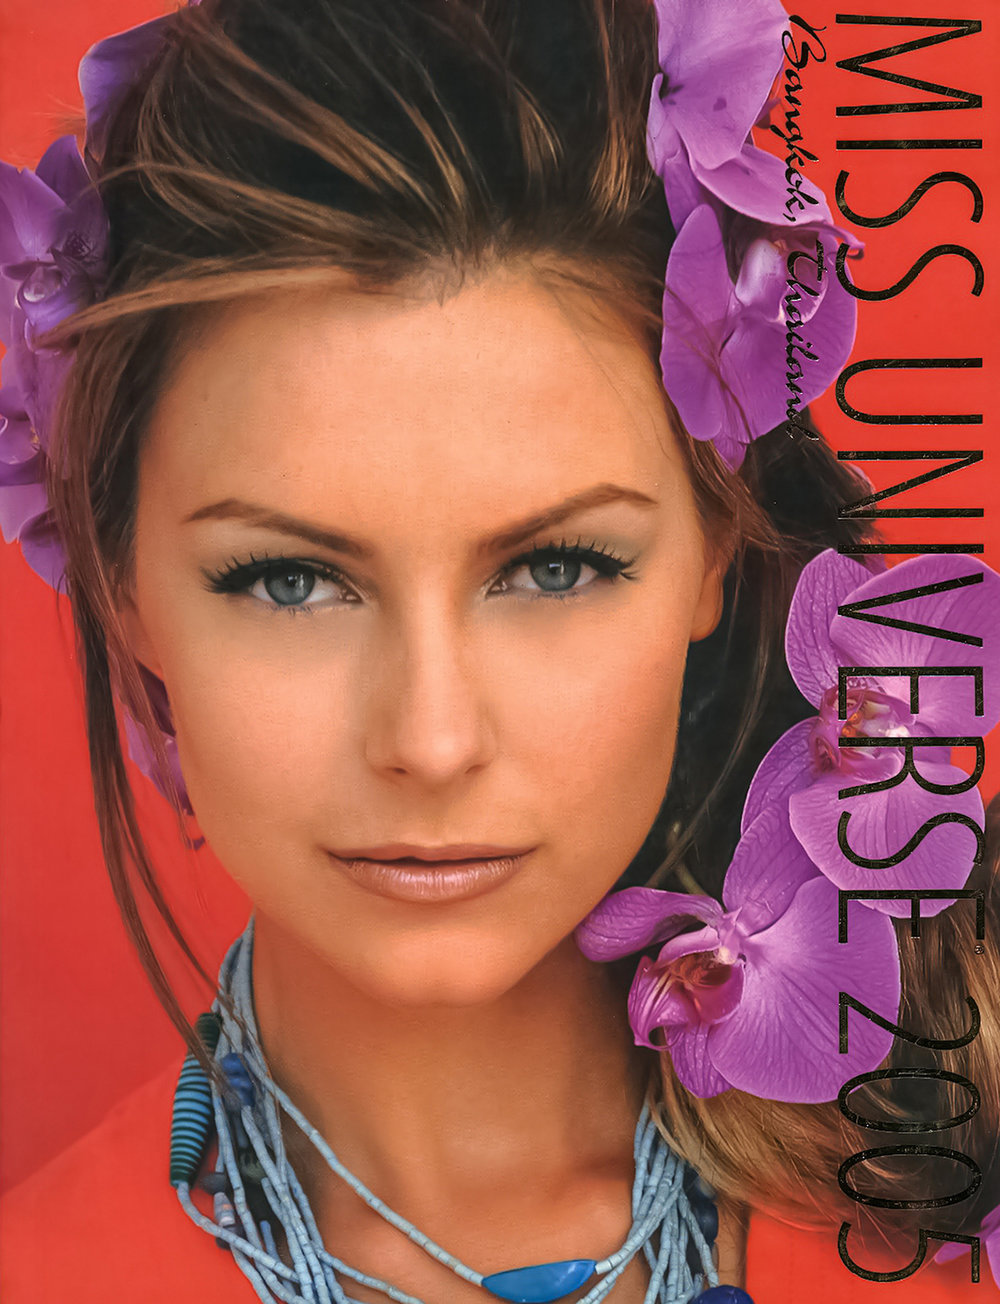 MissUniverse2005-Cover-2.jpg